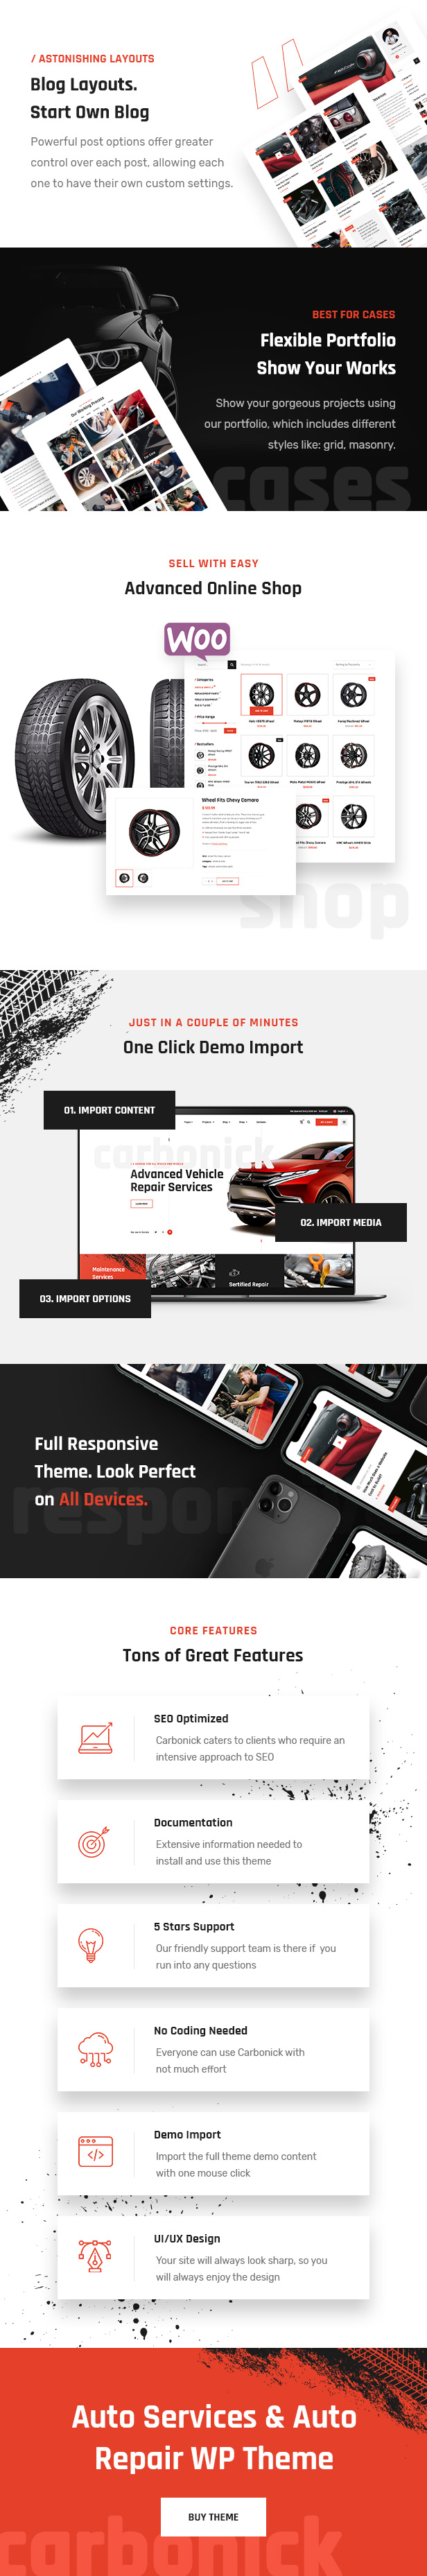 Carbonick - Auto Services & Repair WordPress Theme - 2